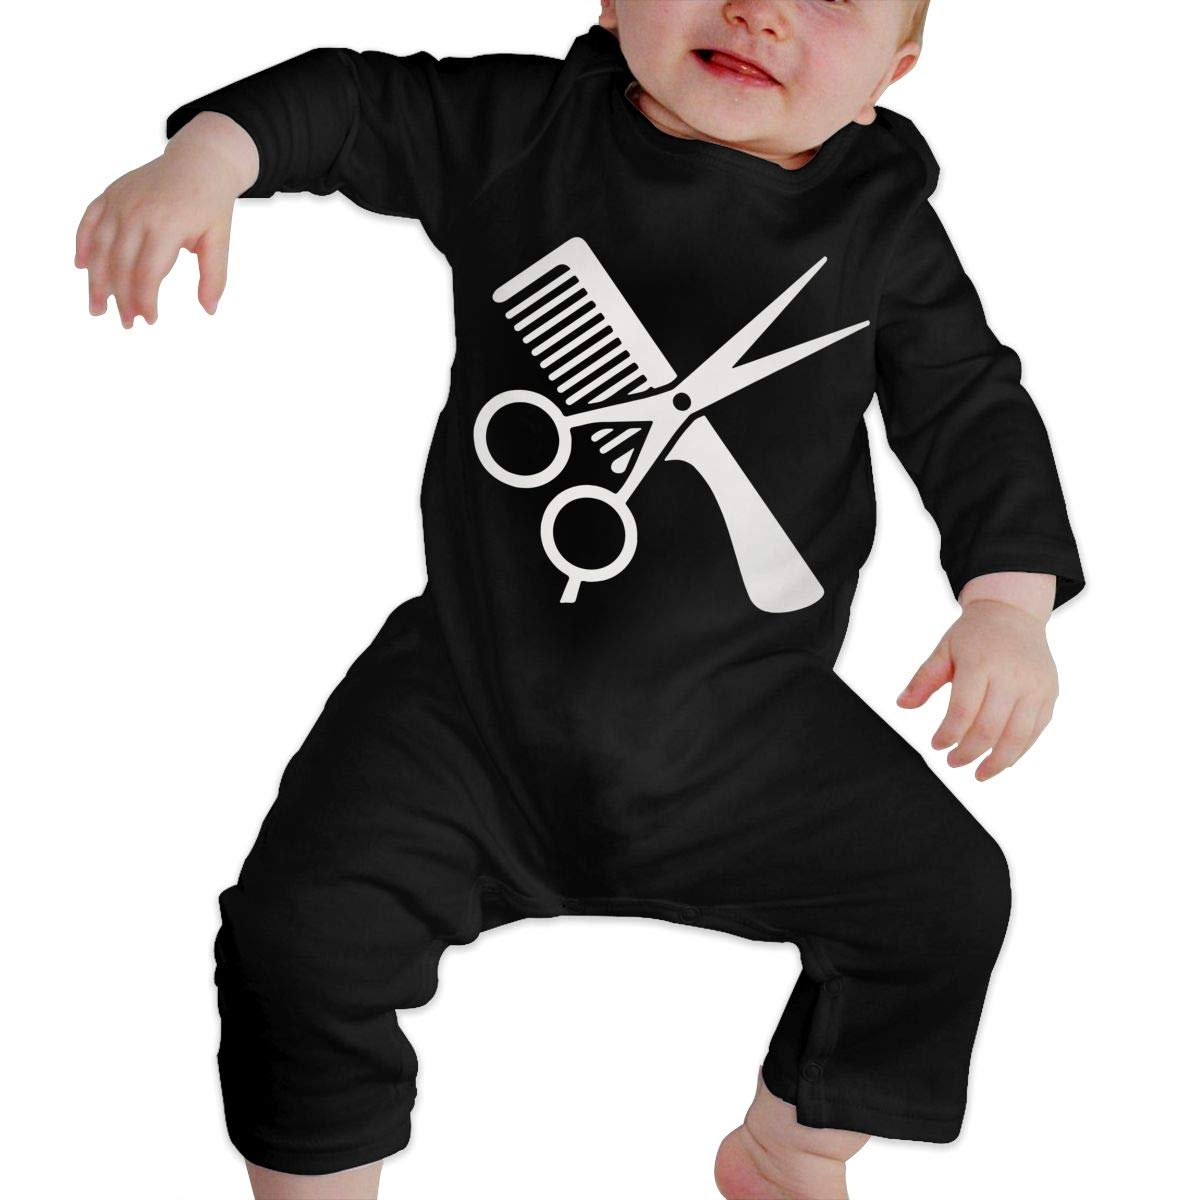 A1BY-5US Infant Babys Cotton Long Sleeve Hairdresser Romper Bodysuit Funny Printed Romper Clothes